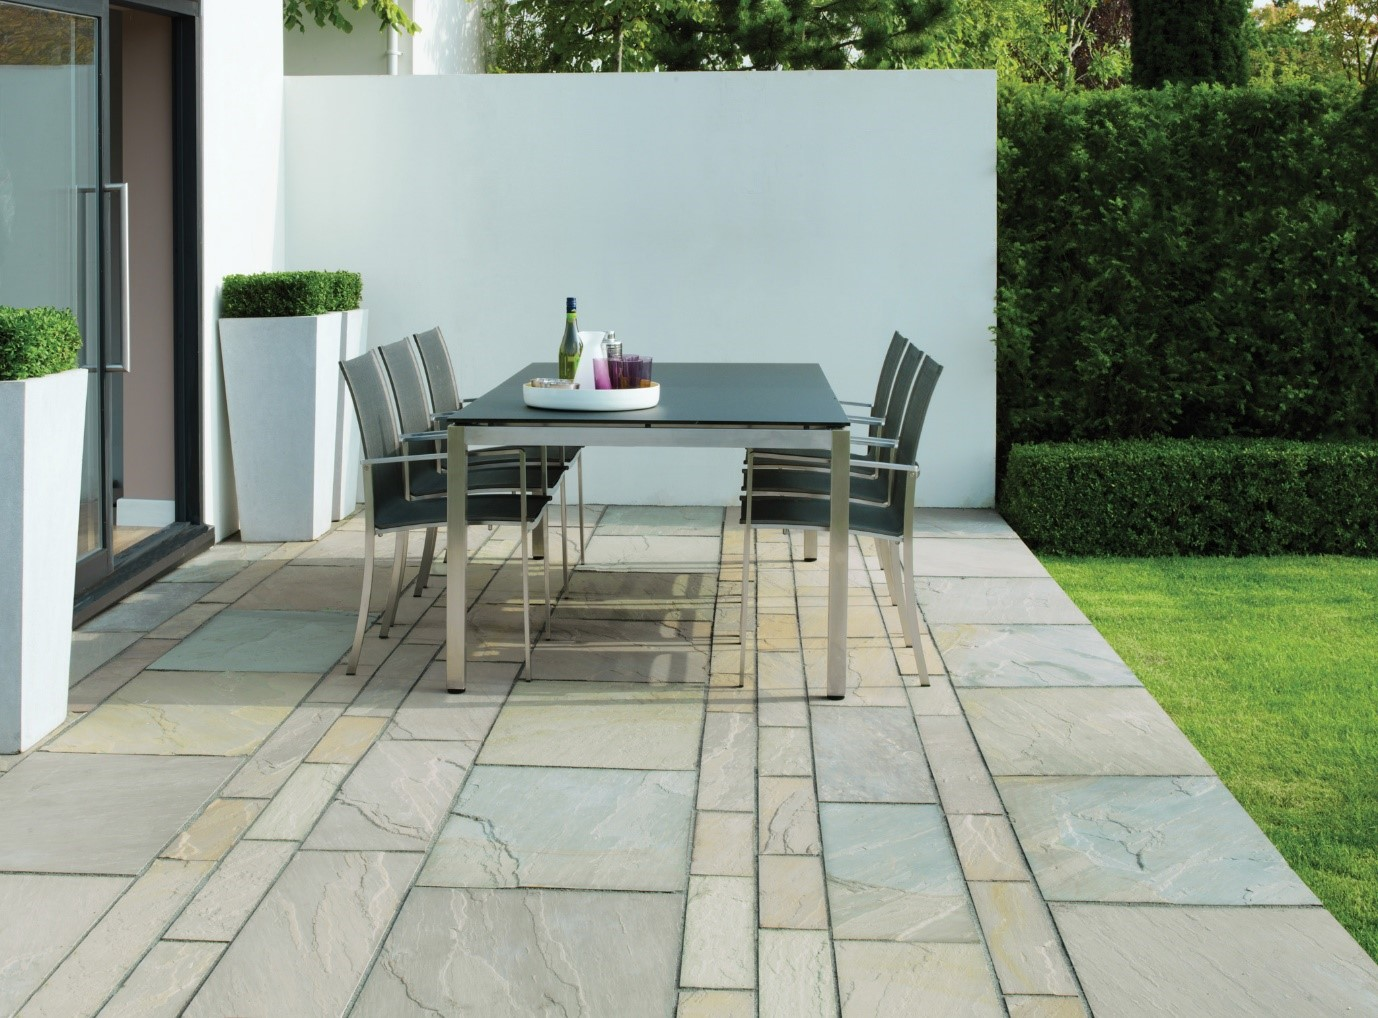 Garden furniture in a patio area